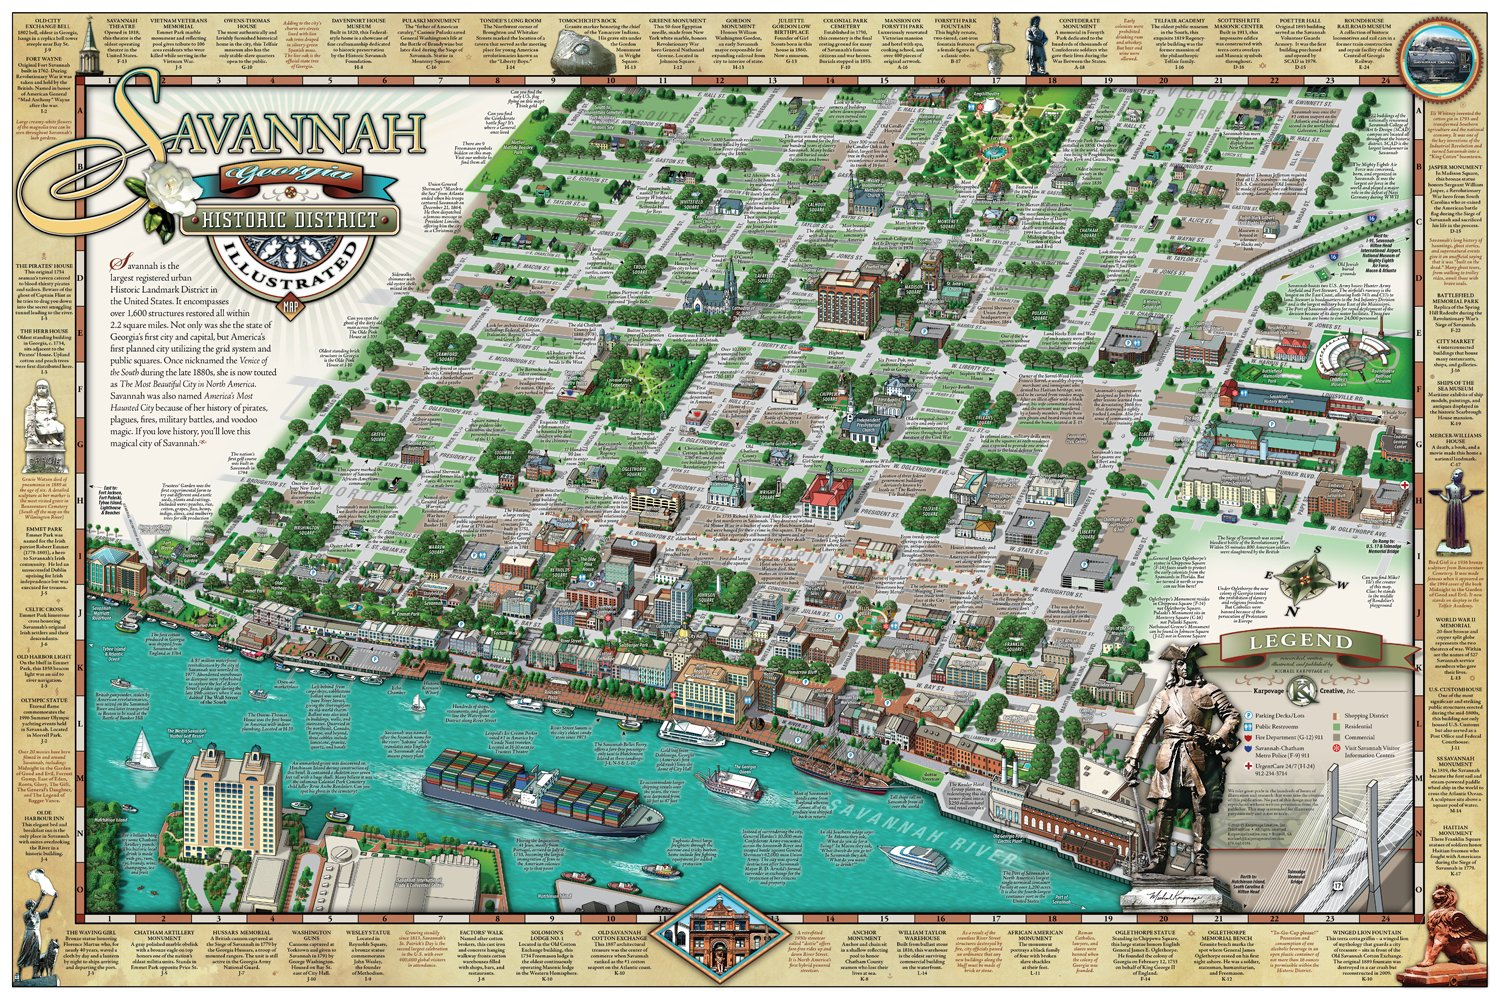 Savannah Historic District Illustrated Map Michael Karpovage – Savannah Tourist Map